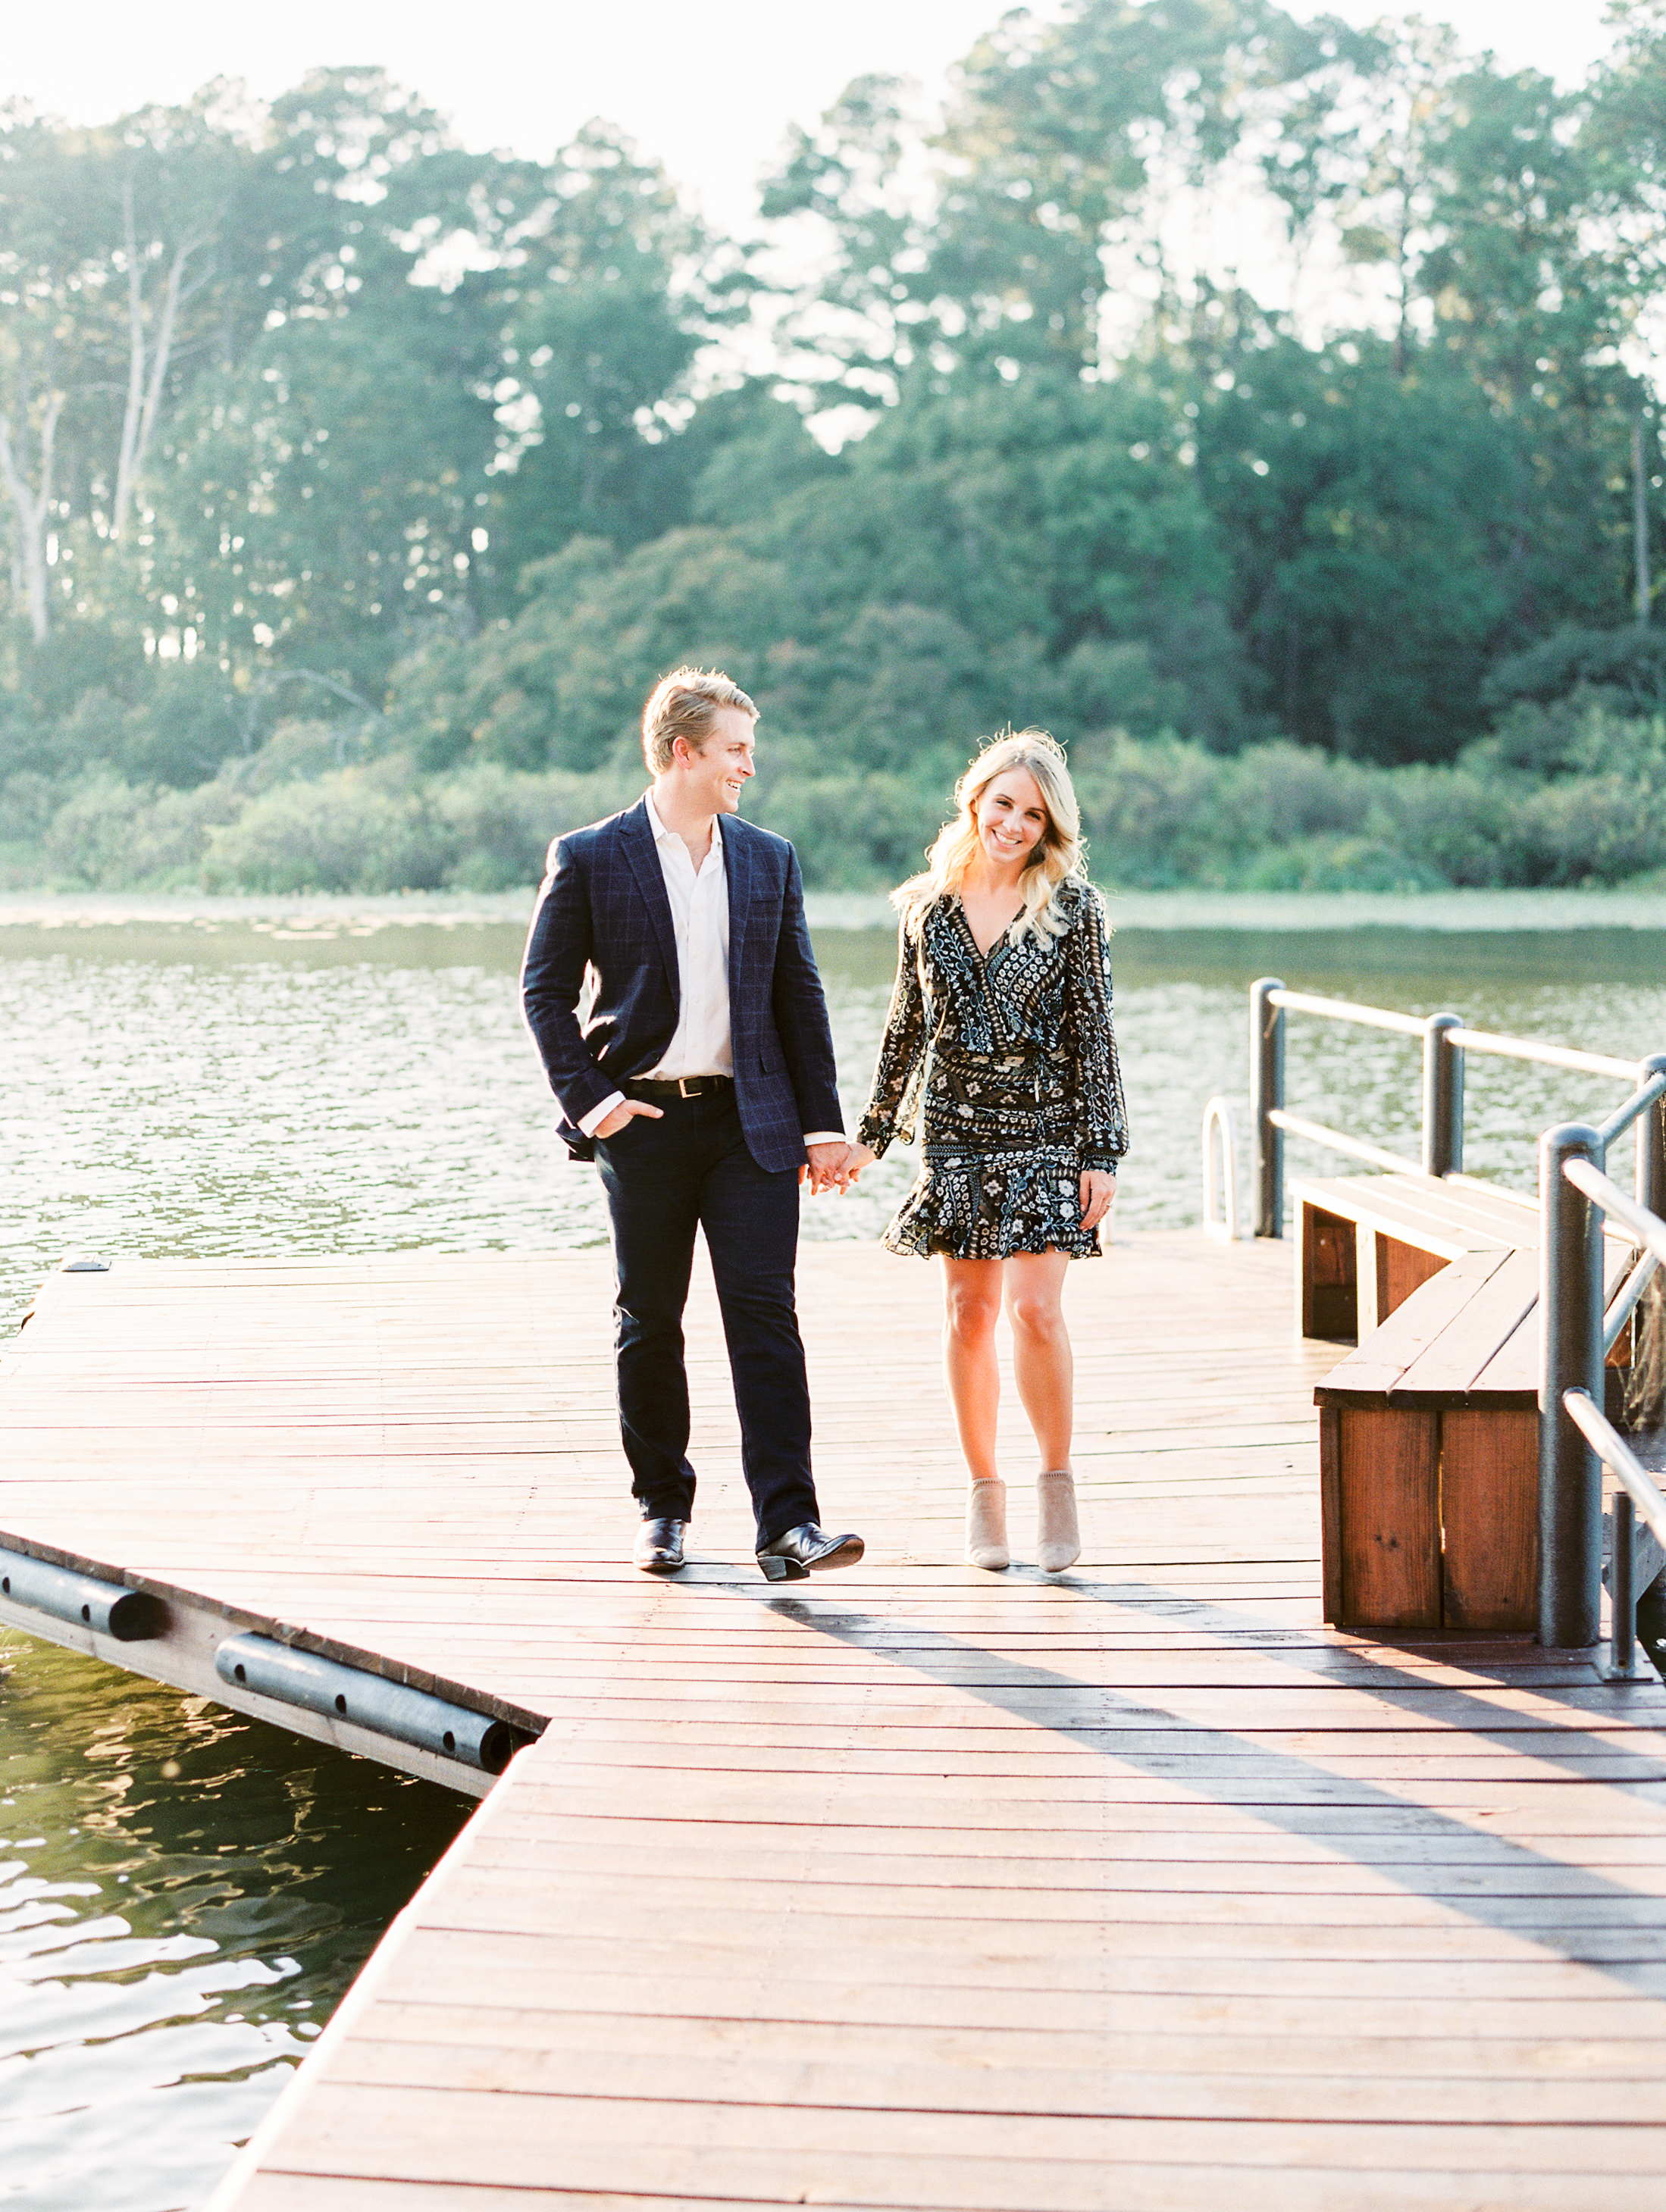 Lauren+John+Engaged+TX-126.jpg